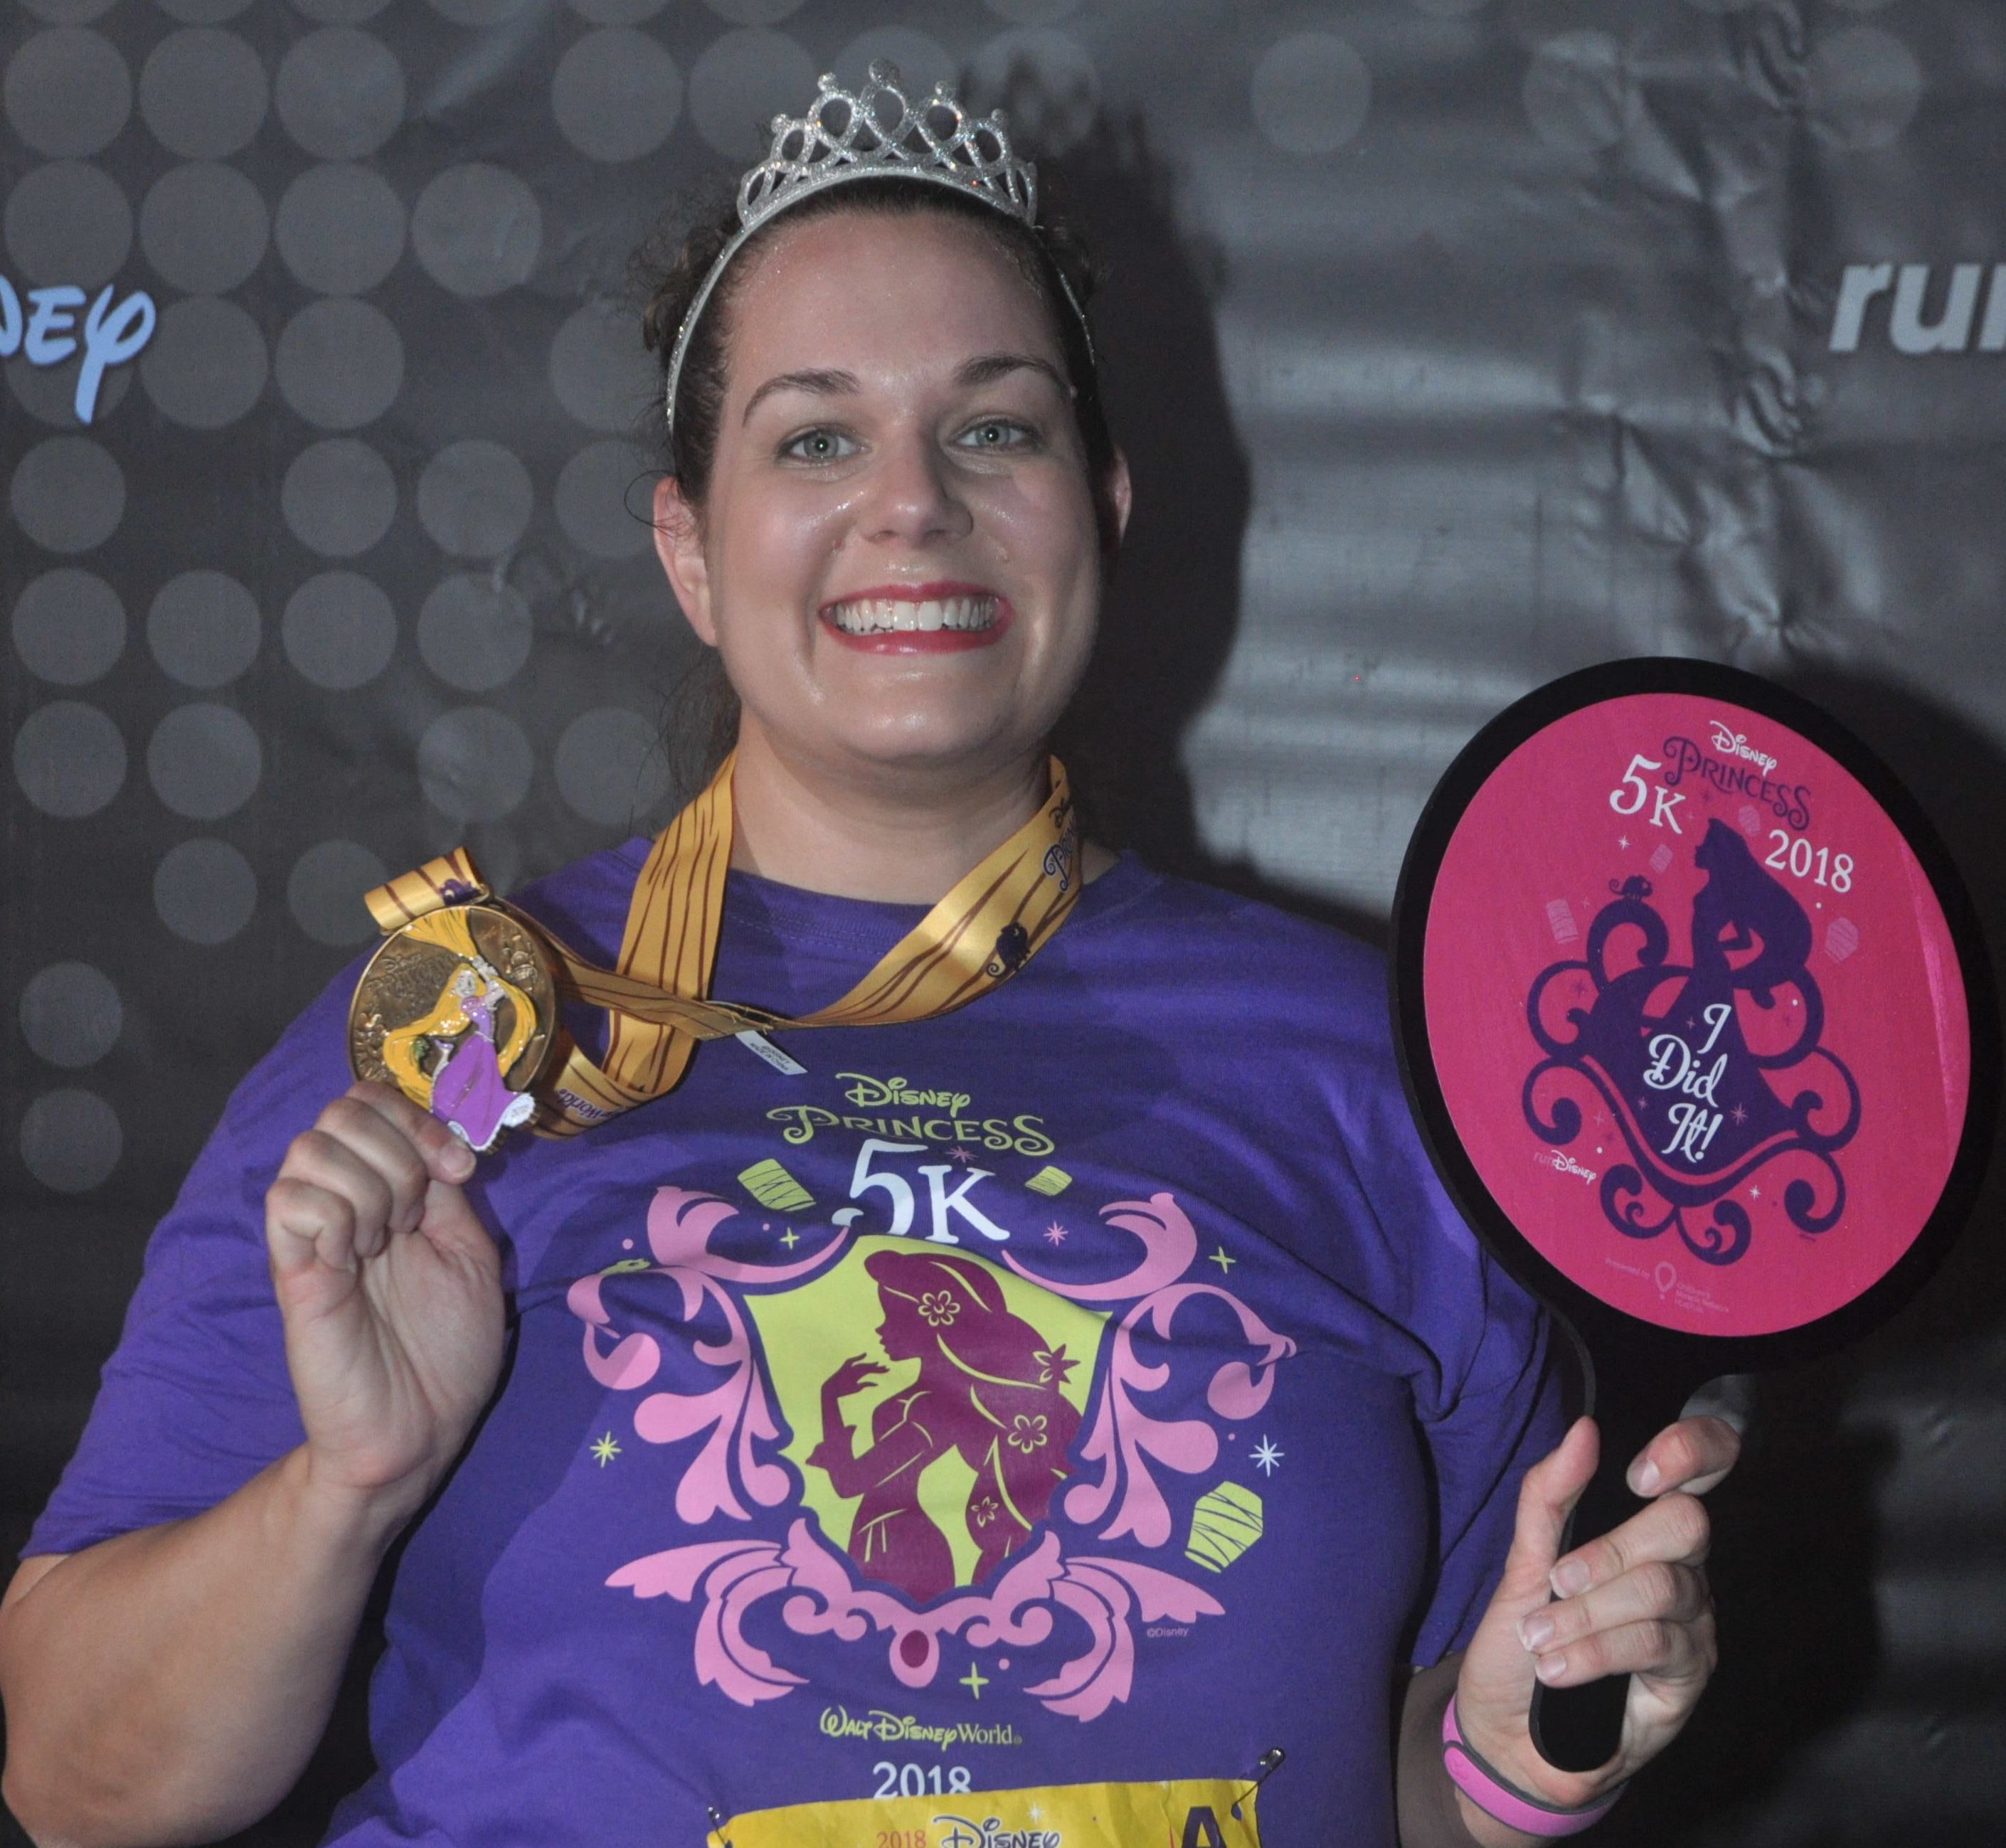 2018 Disney Social Media Moms Celebration, Run Disney Princess 5k